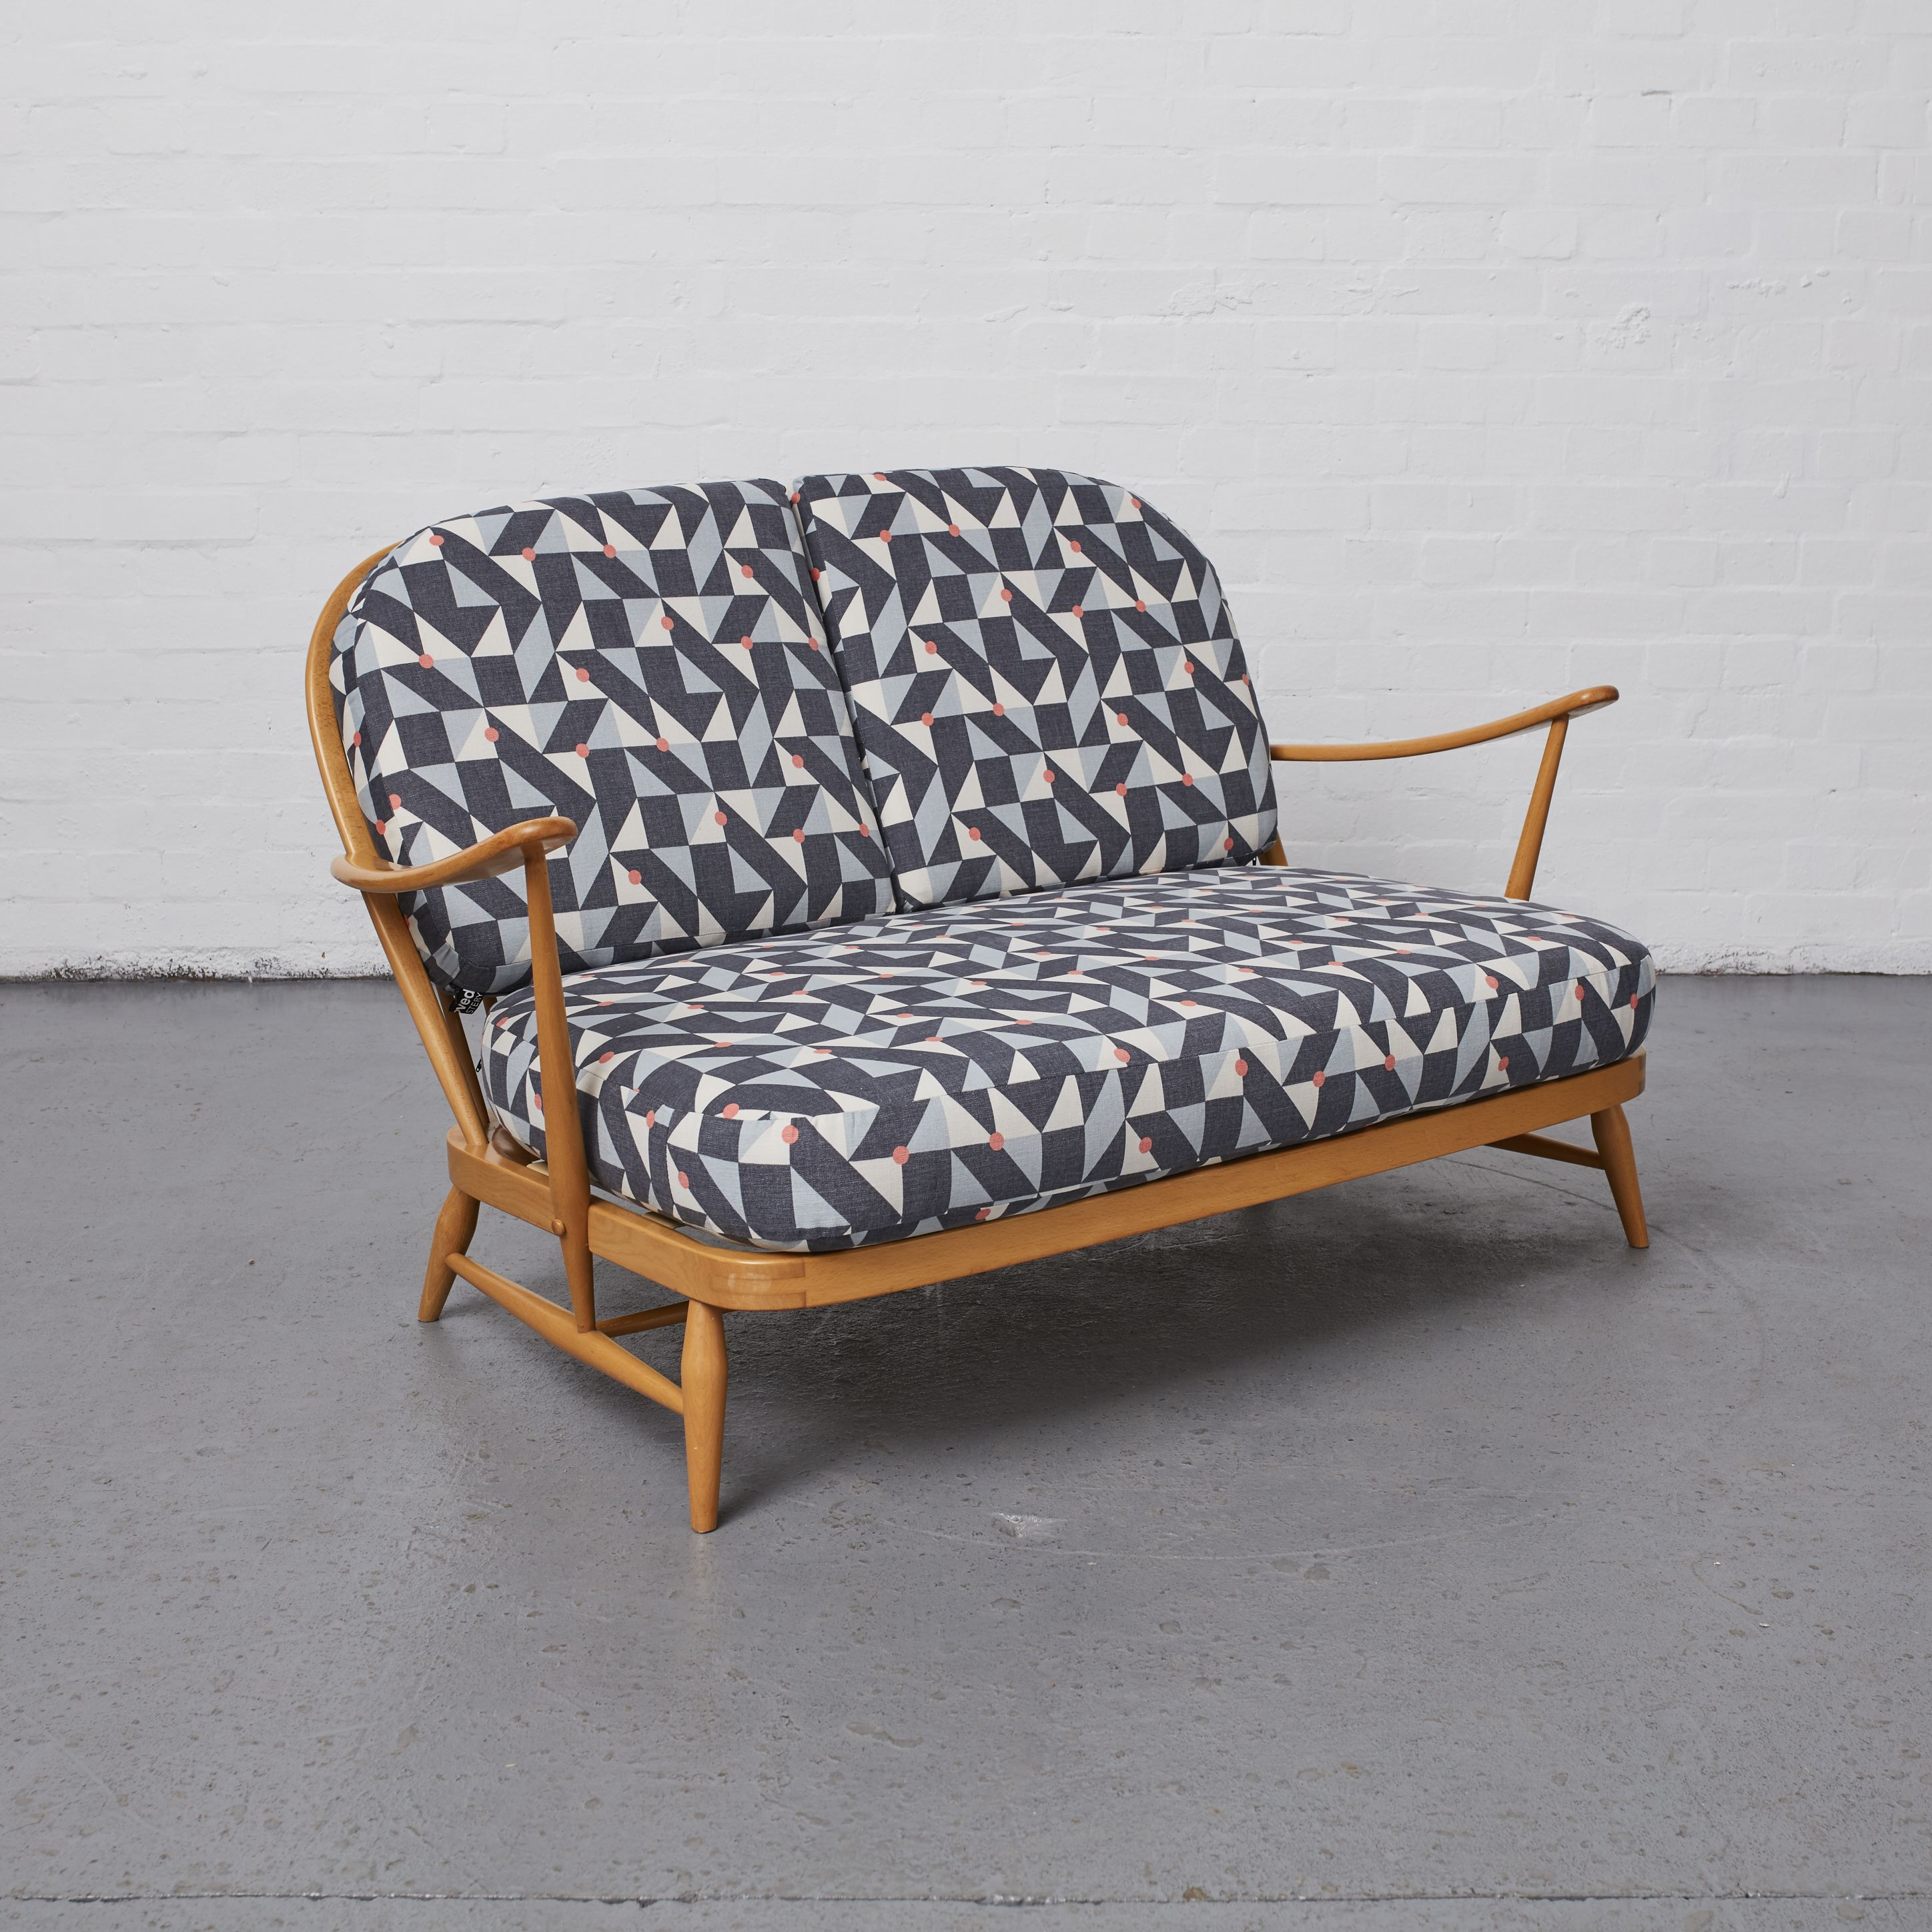 Ercol Reupholstery Ercol Cushions And Covers Ercol Furniture Ercol Chair Furniture Reupholstery